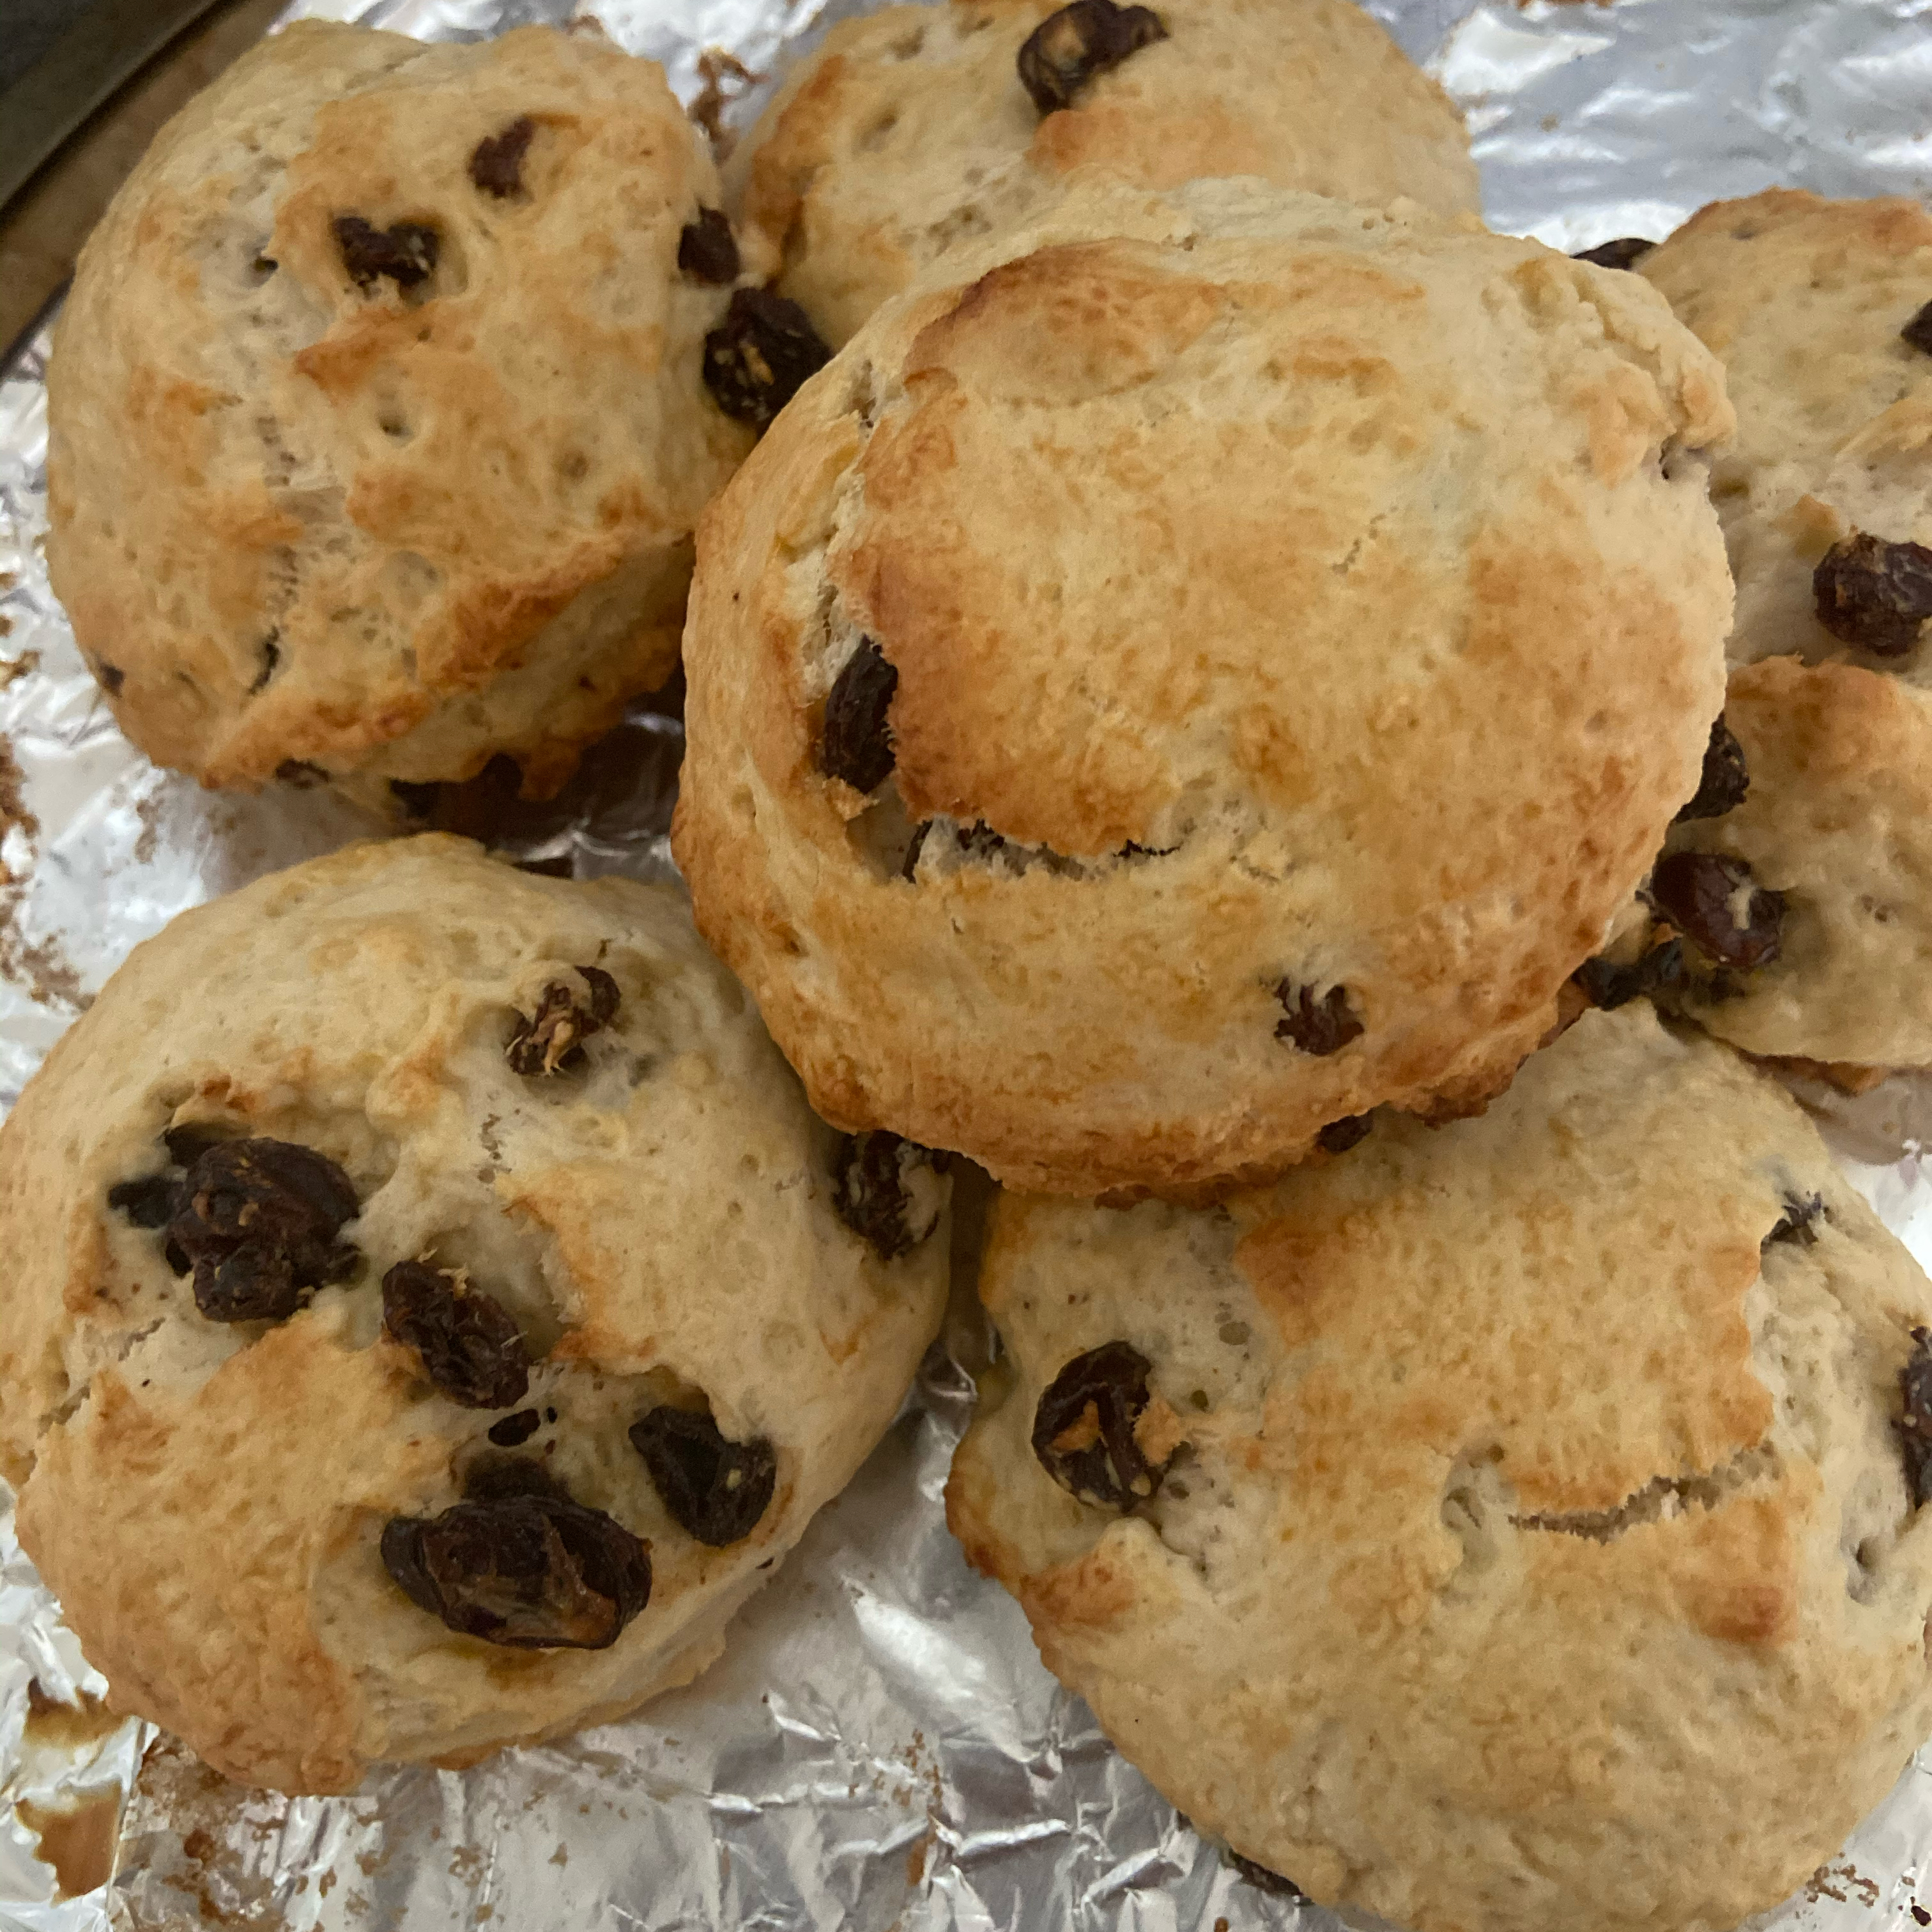 World's Best Scones! From Scotland to the Savoy to the U.S.